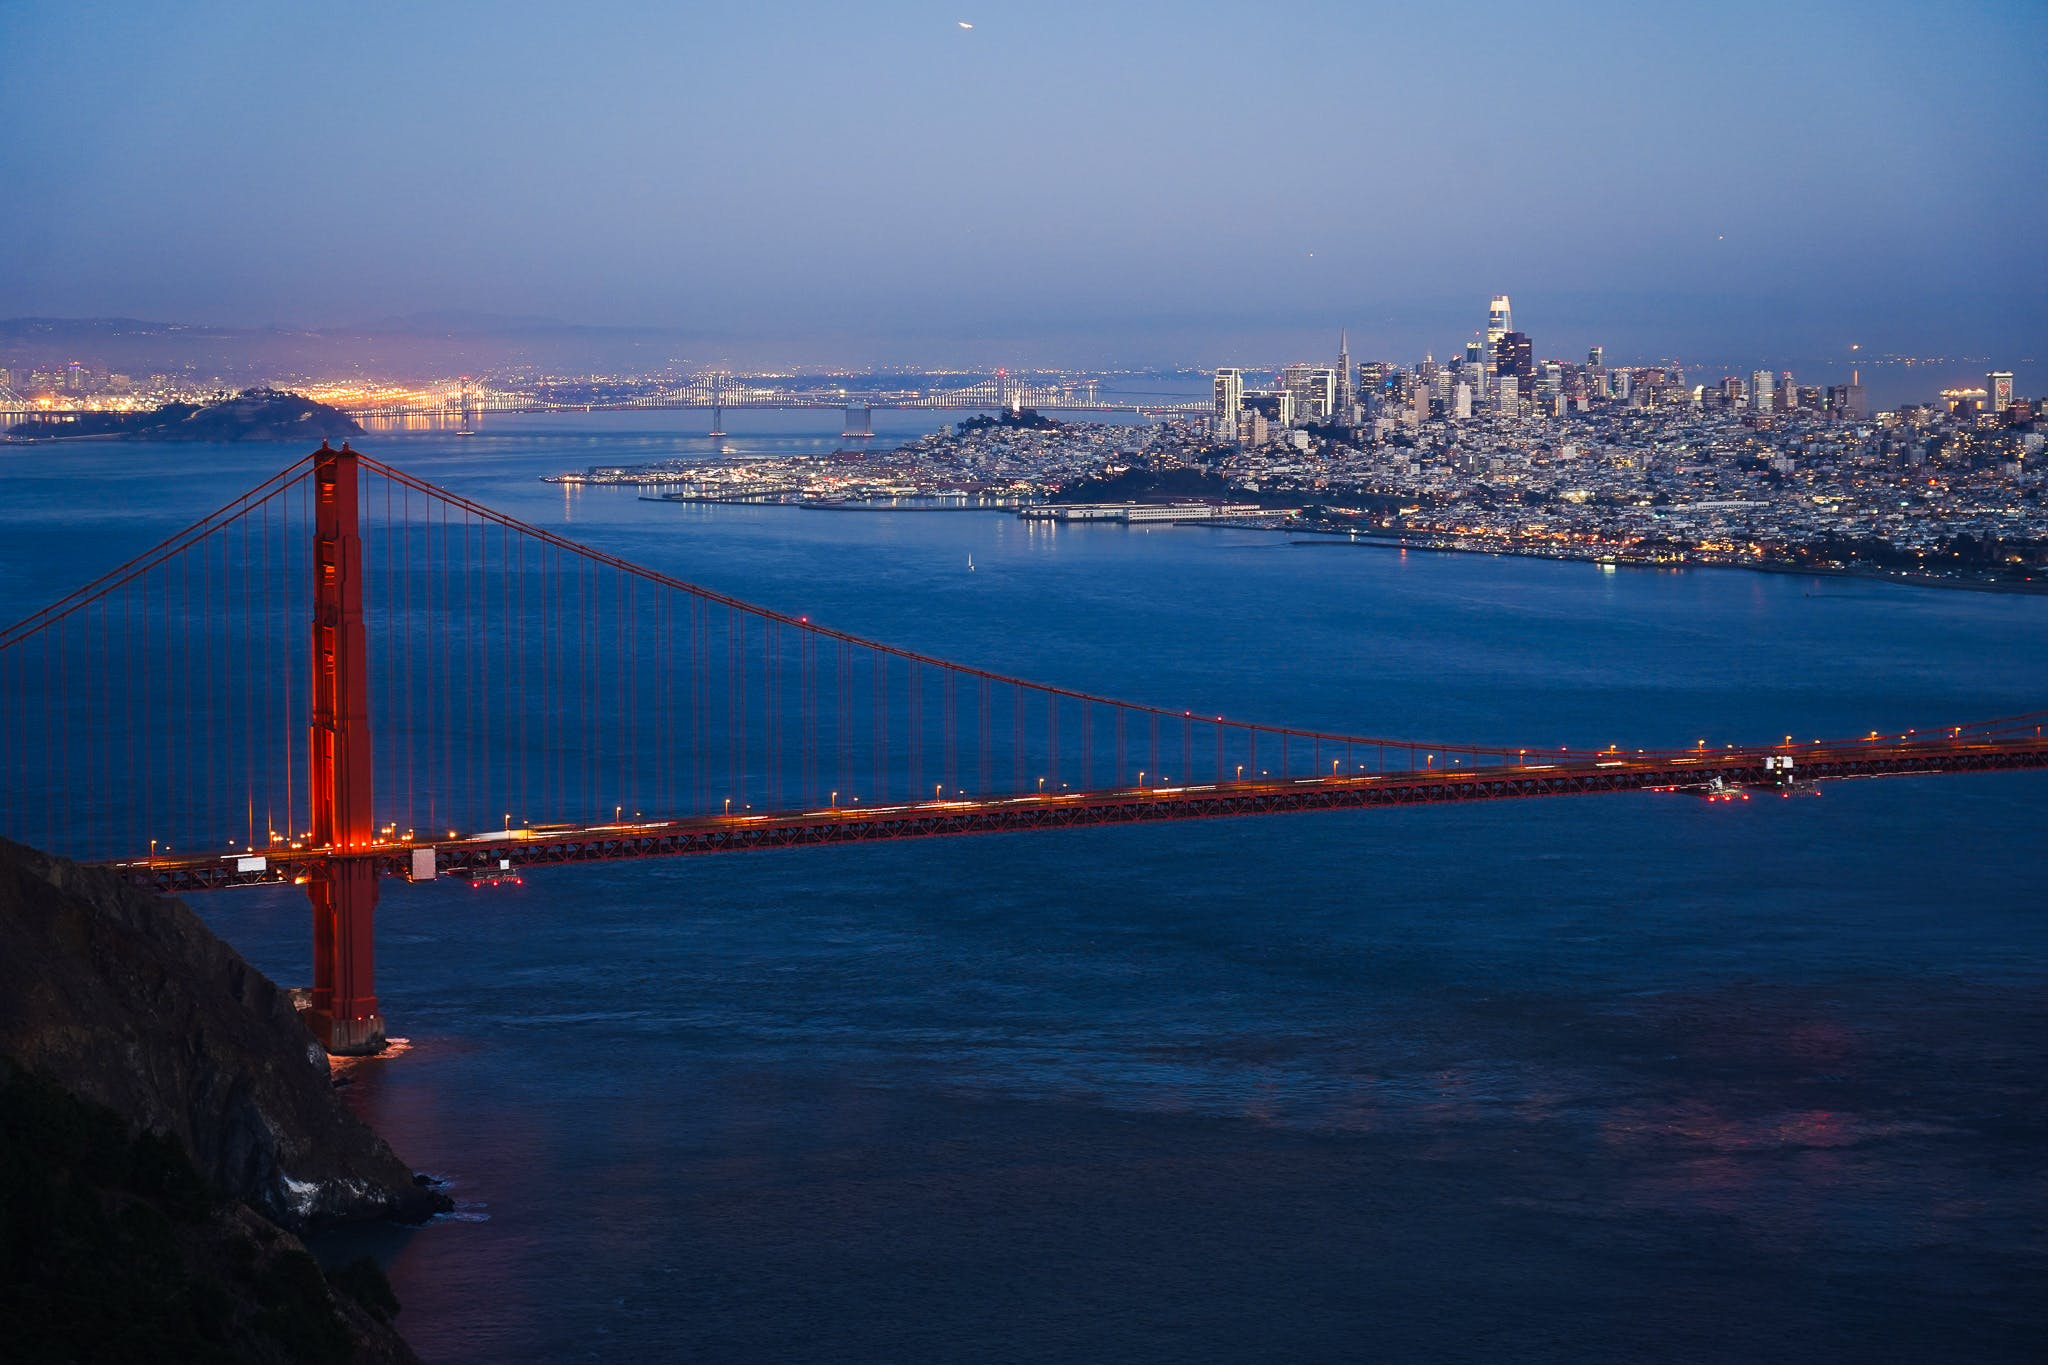 The Golden Gate Bridge and San Francisco sparkling at sunset